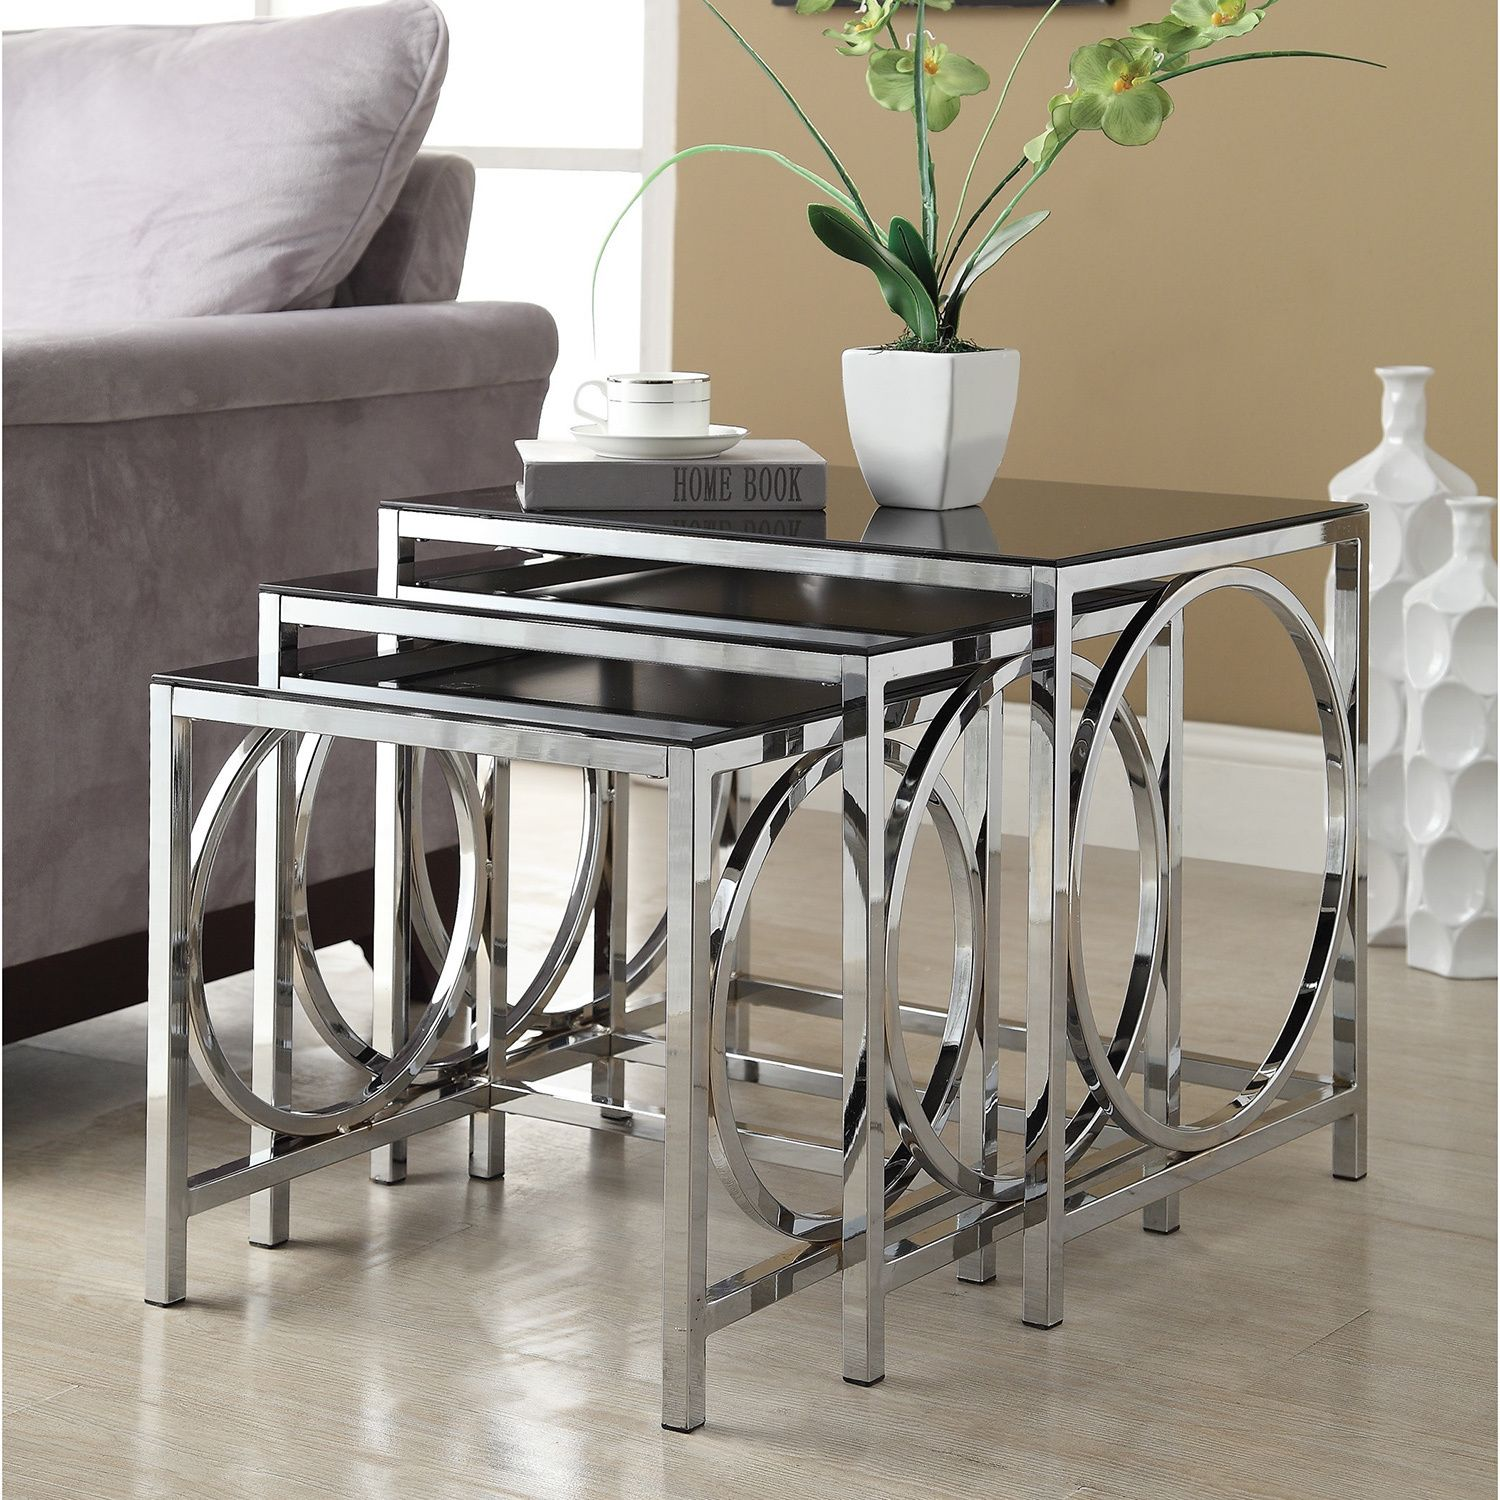 This functional set of three nesting tables have a beautiful